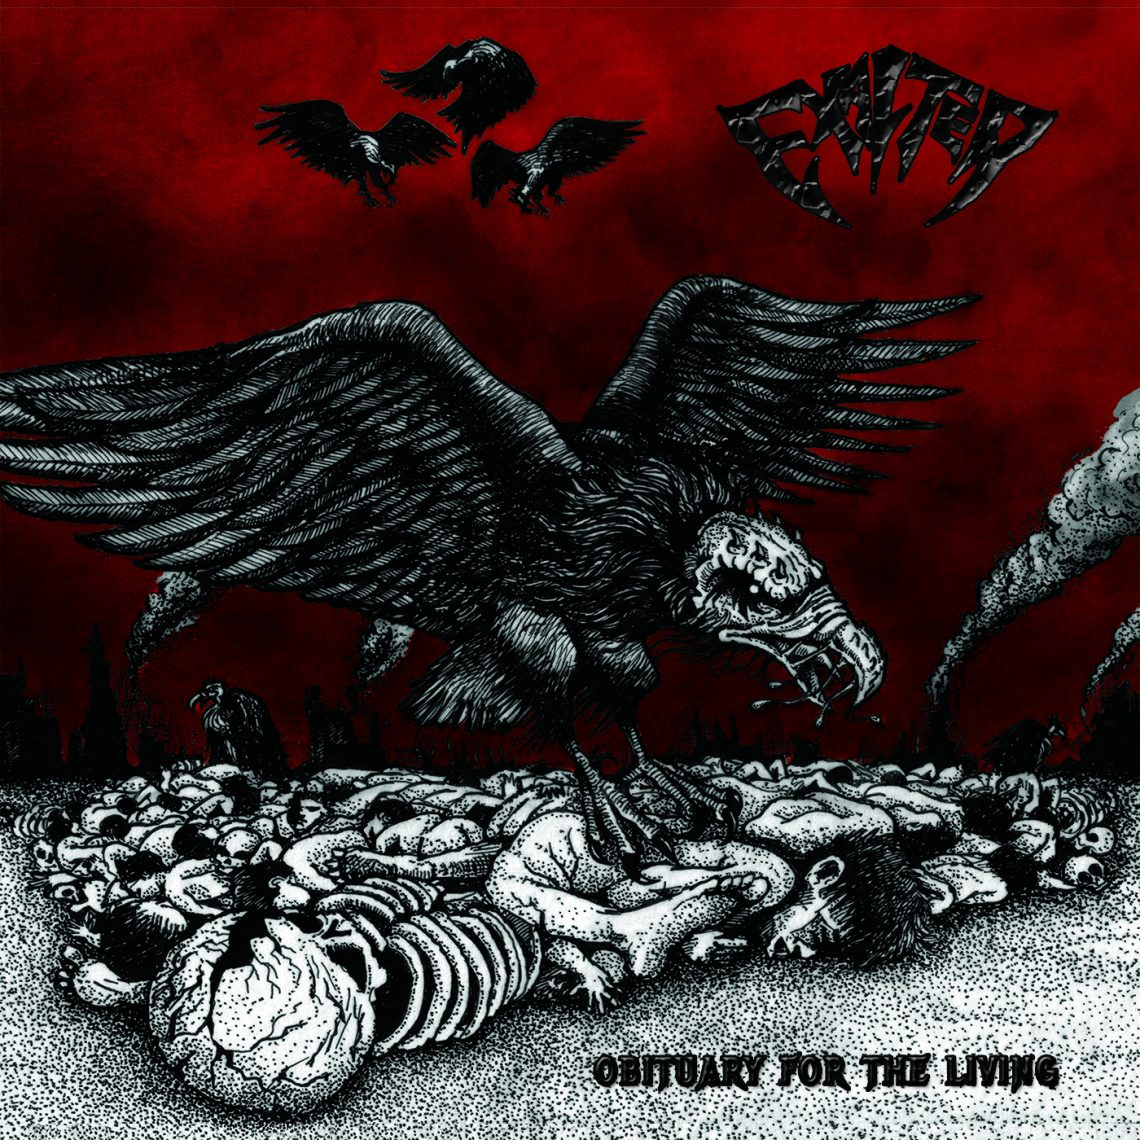 Exalter – Obituary For The Living